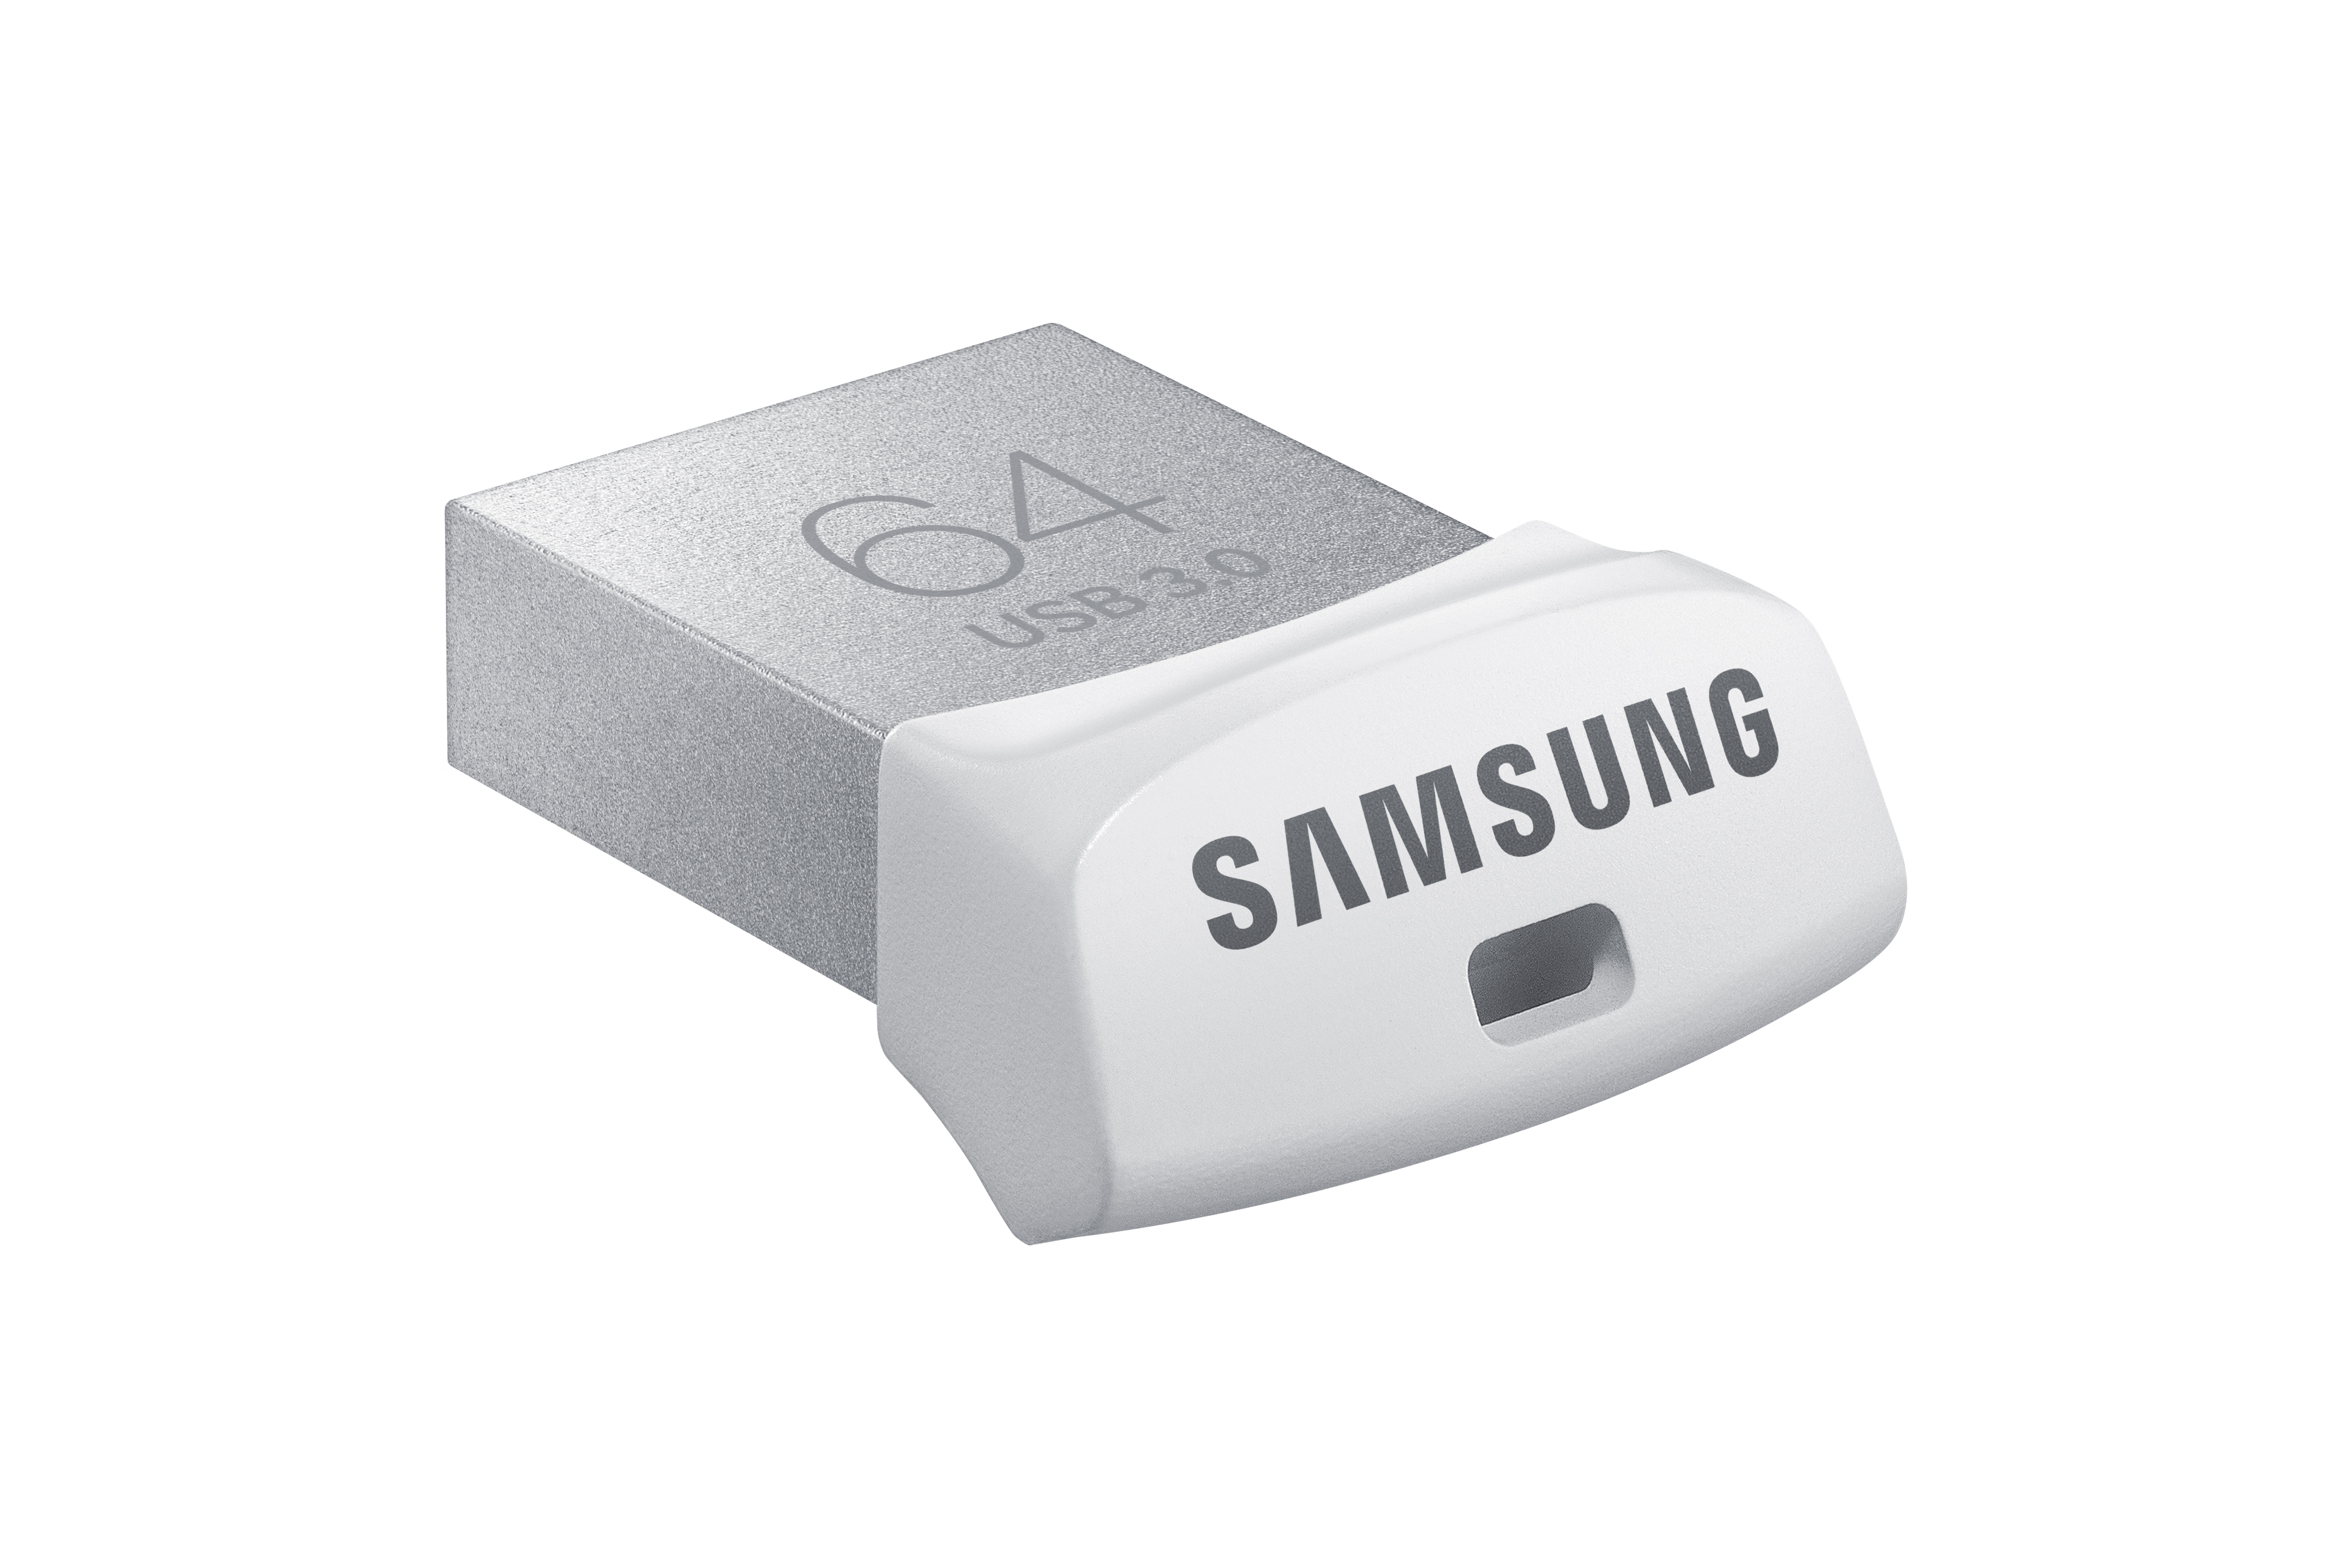 fit und duo neue usb sticks von samsung all about samsung. Black Bedroom Furniture Sets. Home Design Ideas